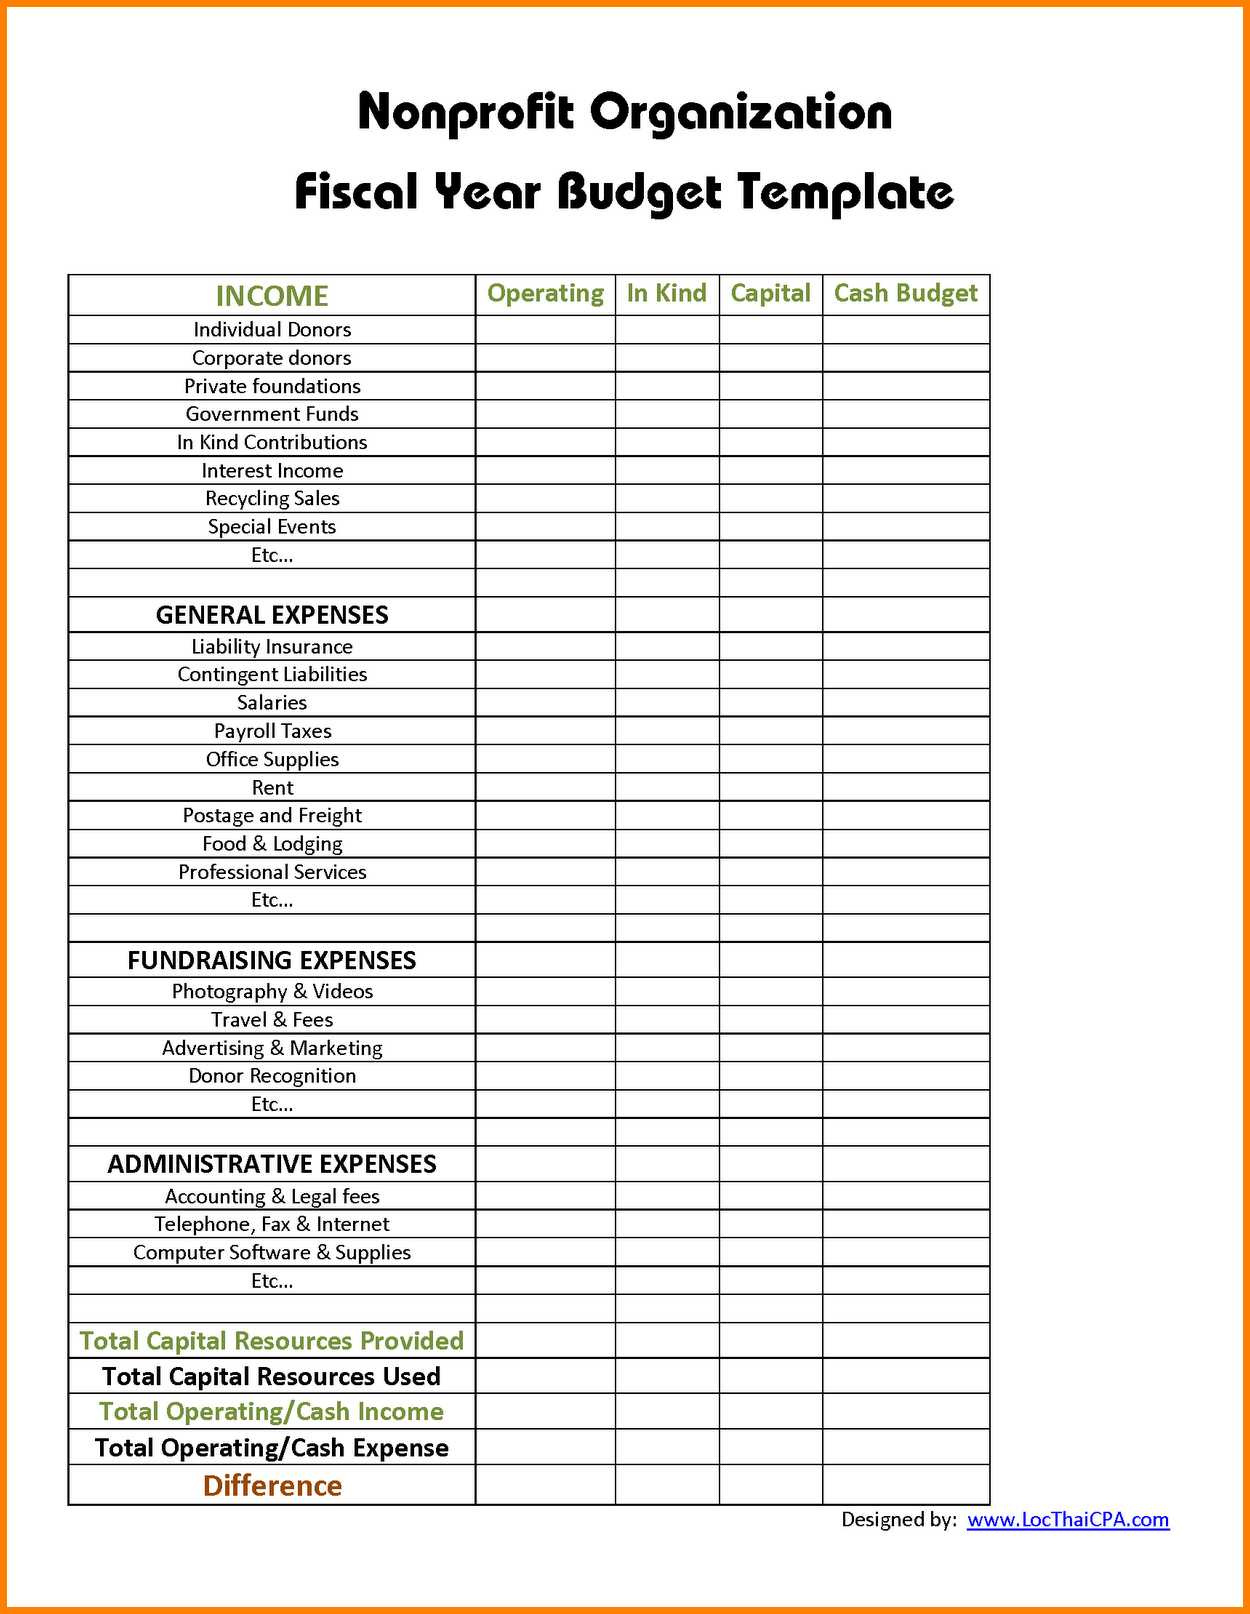 Letters Of Excel Templates For Nonprofit Organizations To Excel Templates For Nonprofit Organizations Download For Free